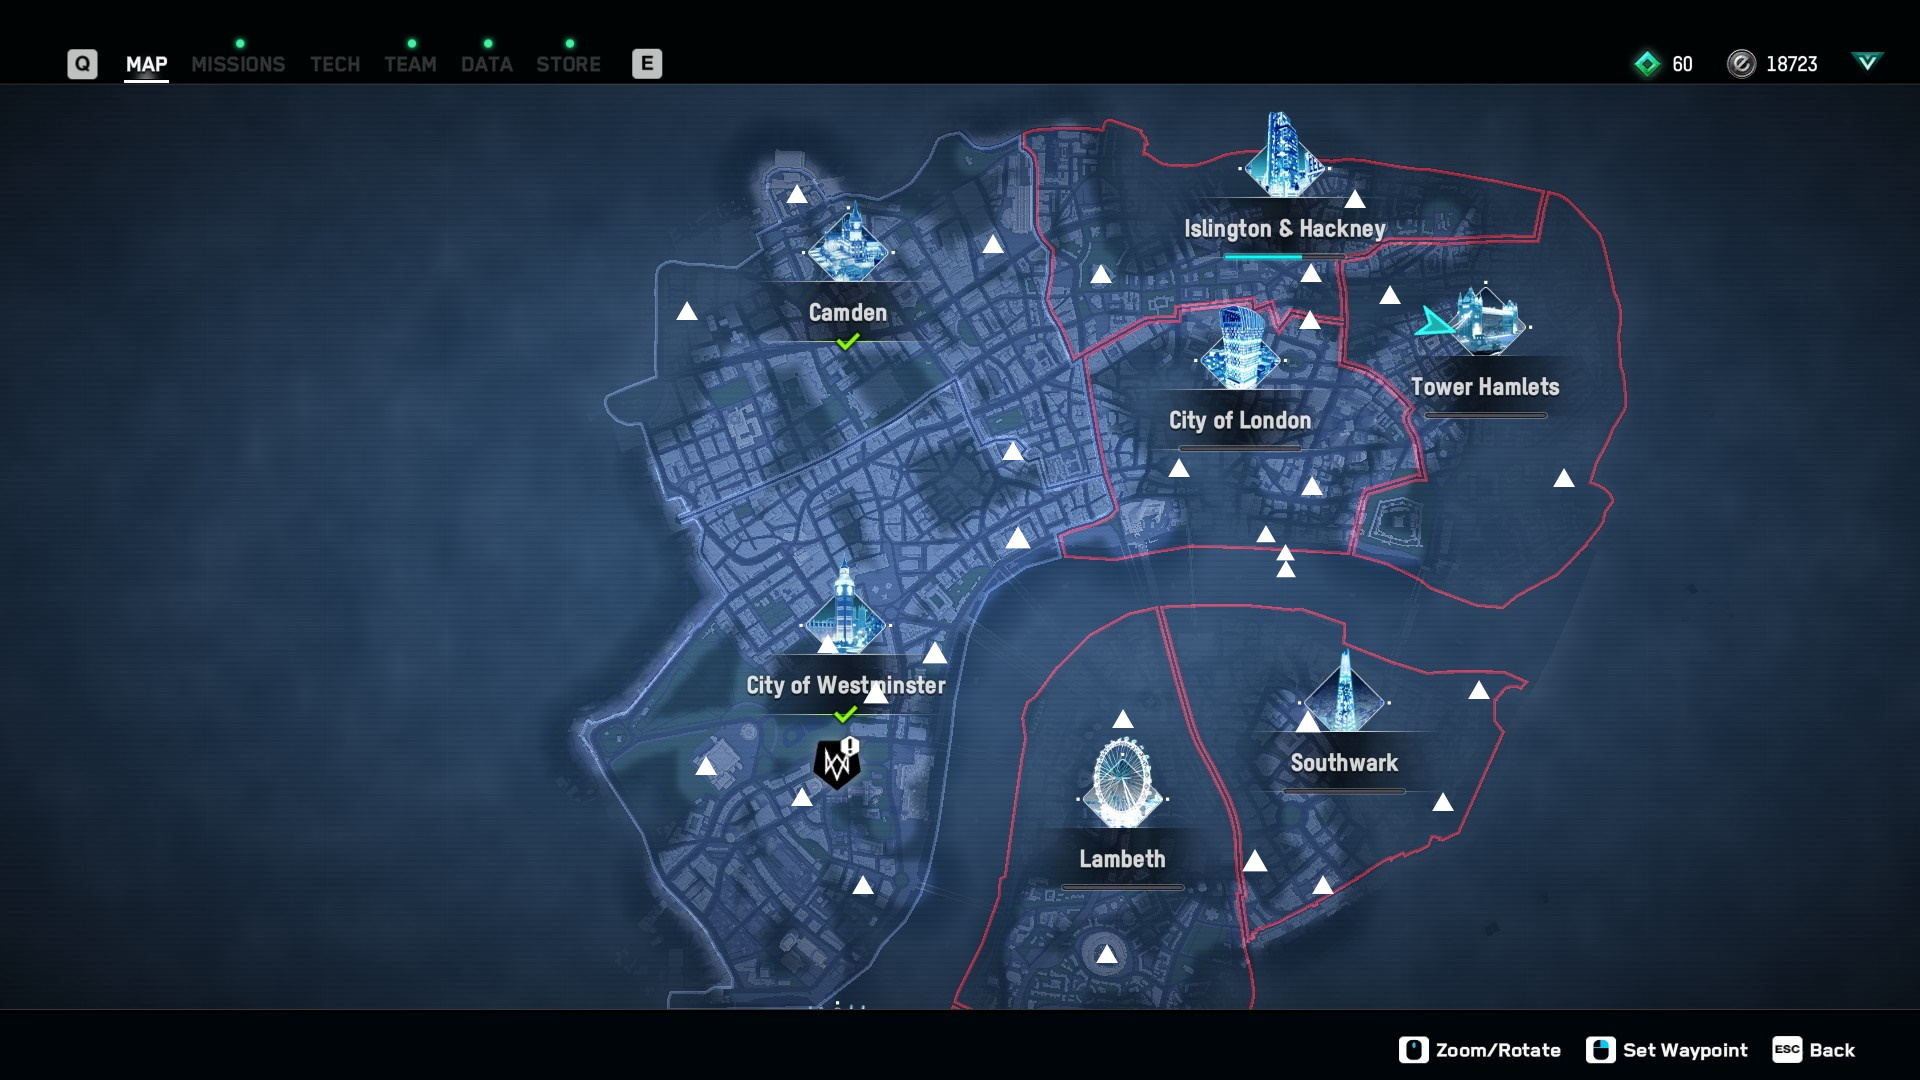 Watch Dogs Legion map with the mask locations marked